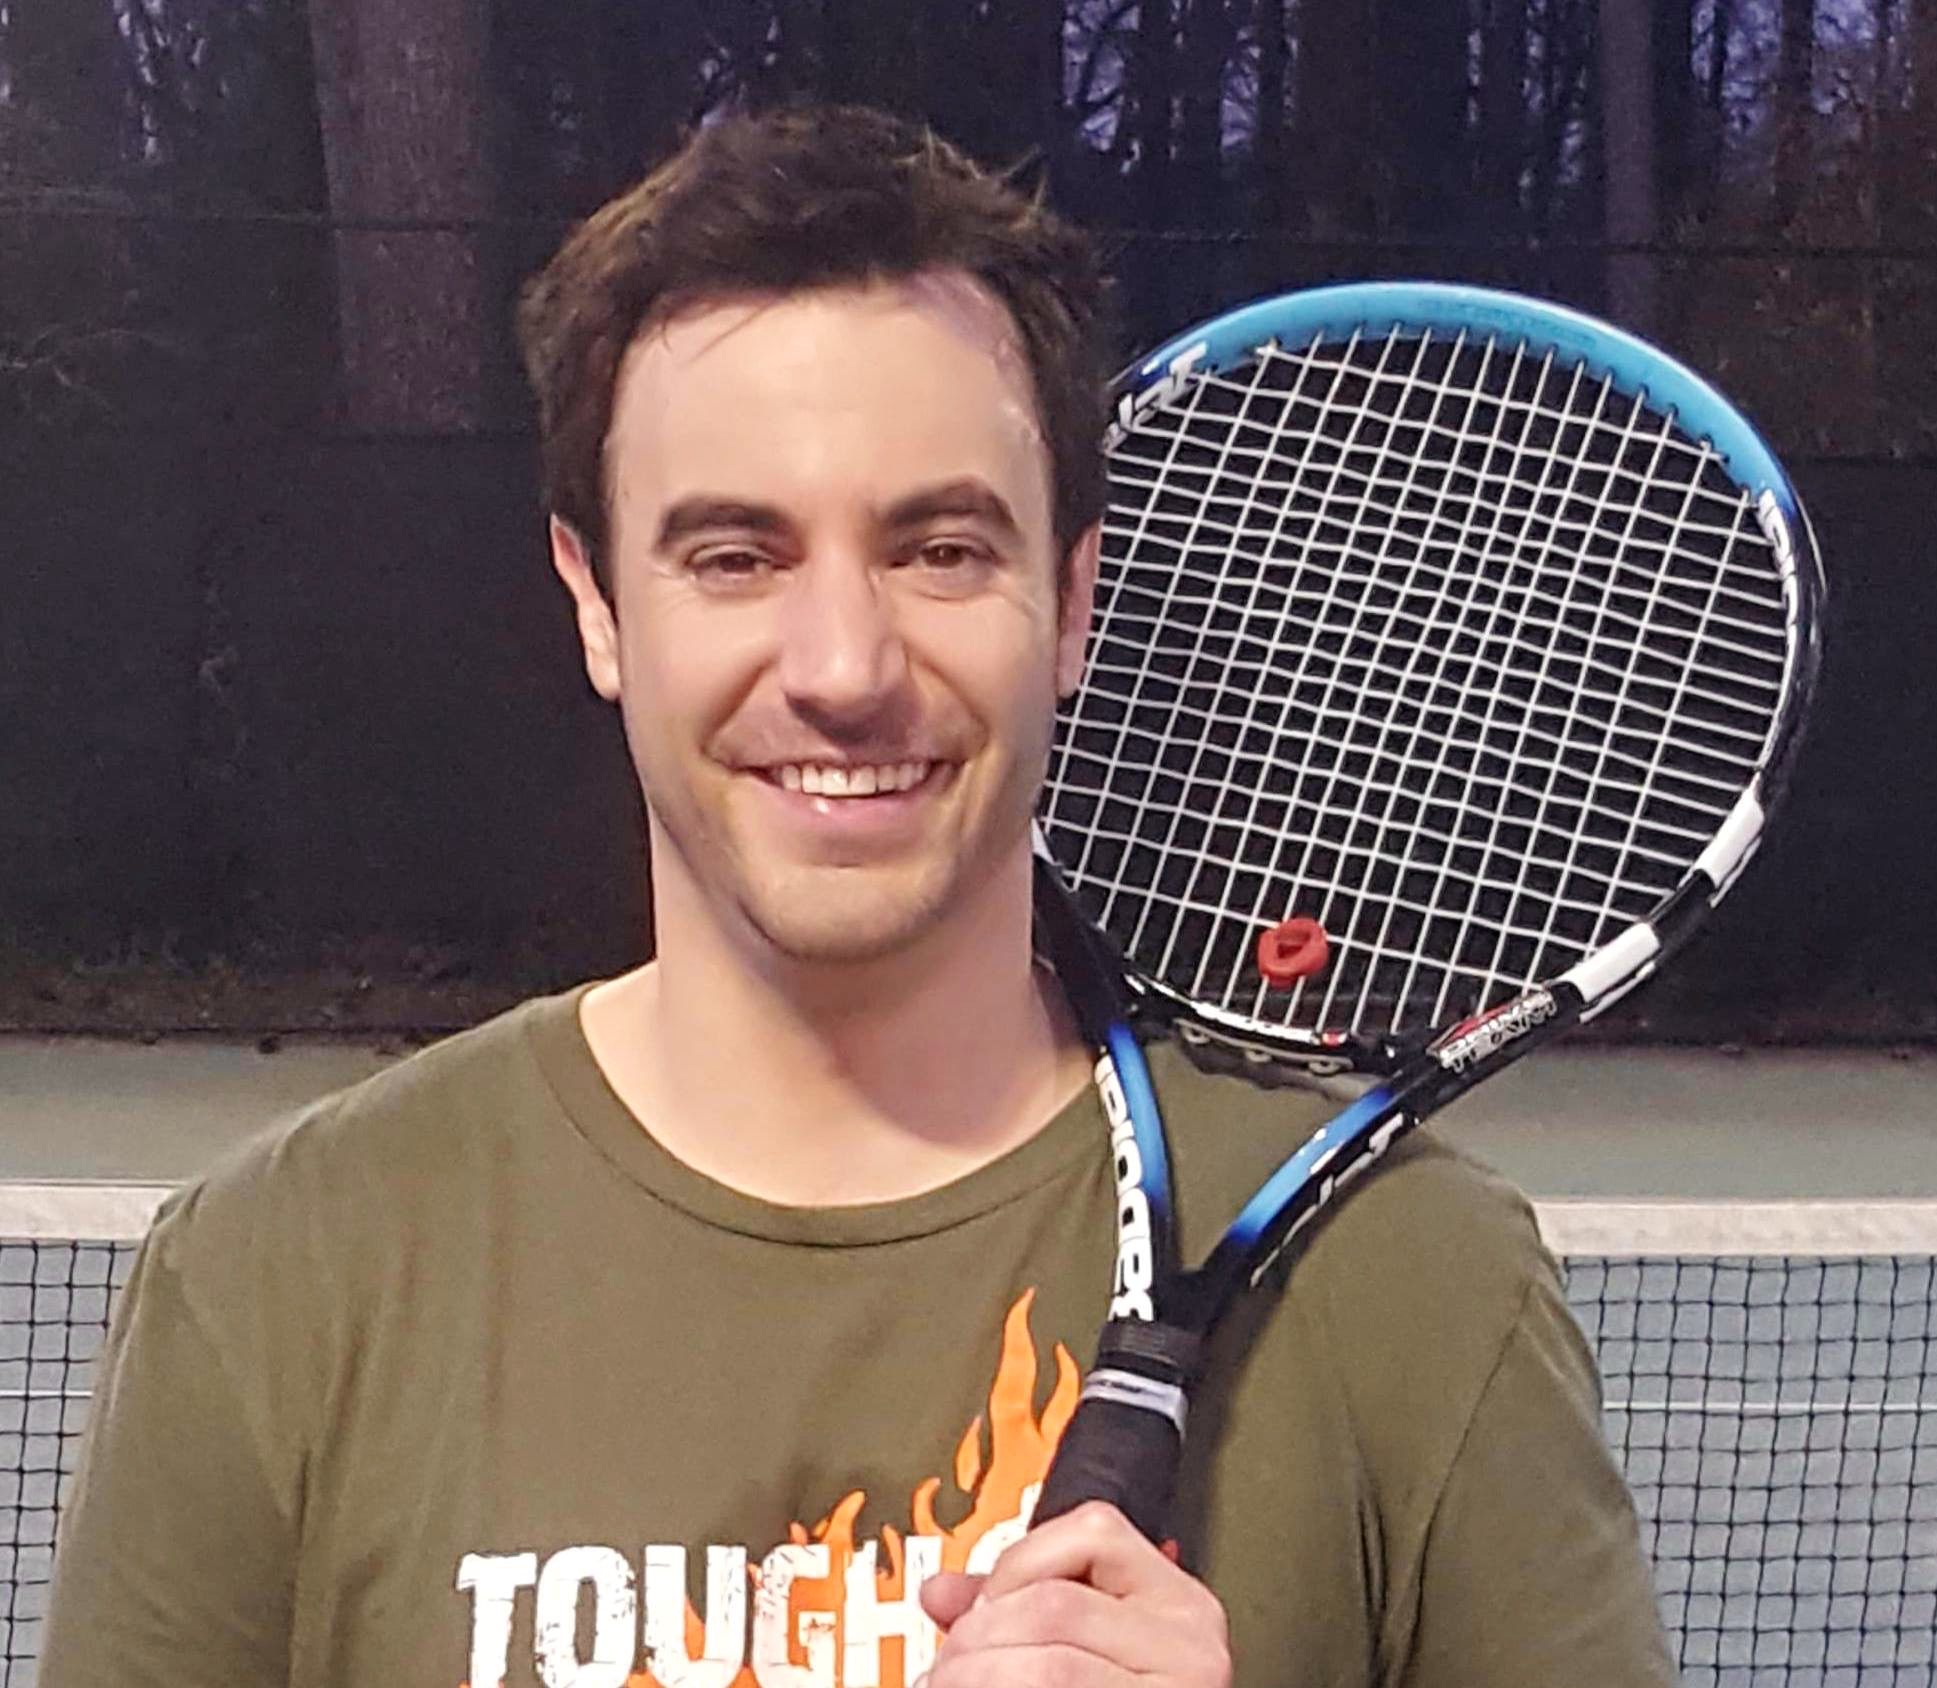 Anthony B. teaches tennis lessons in Colts Neck, NJ